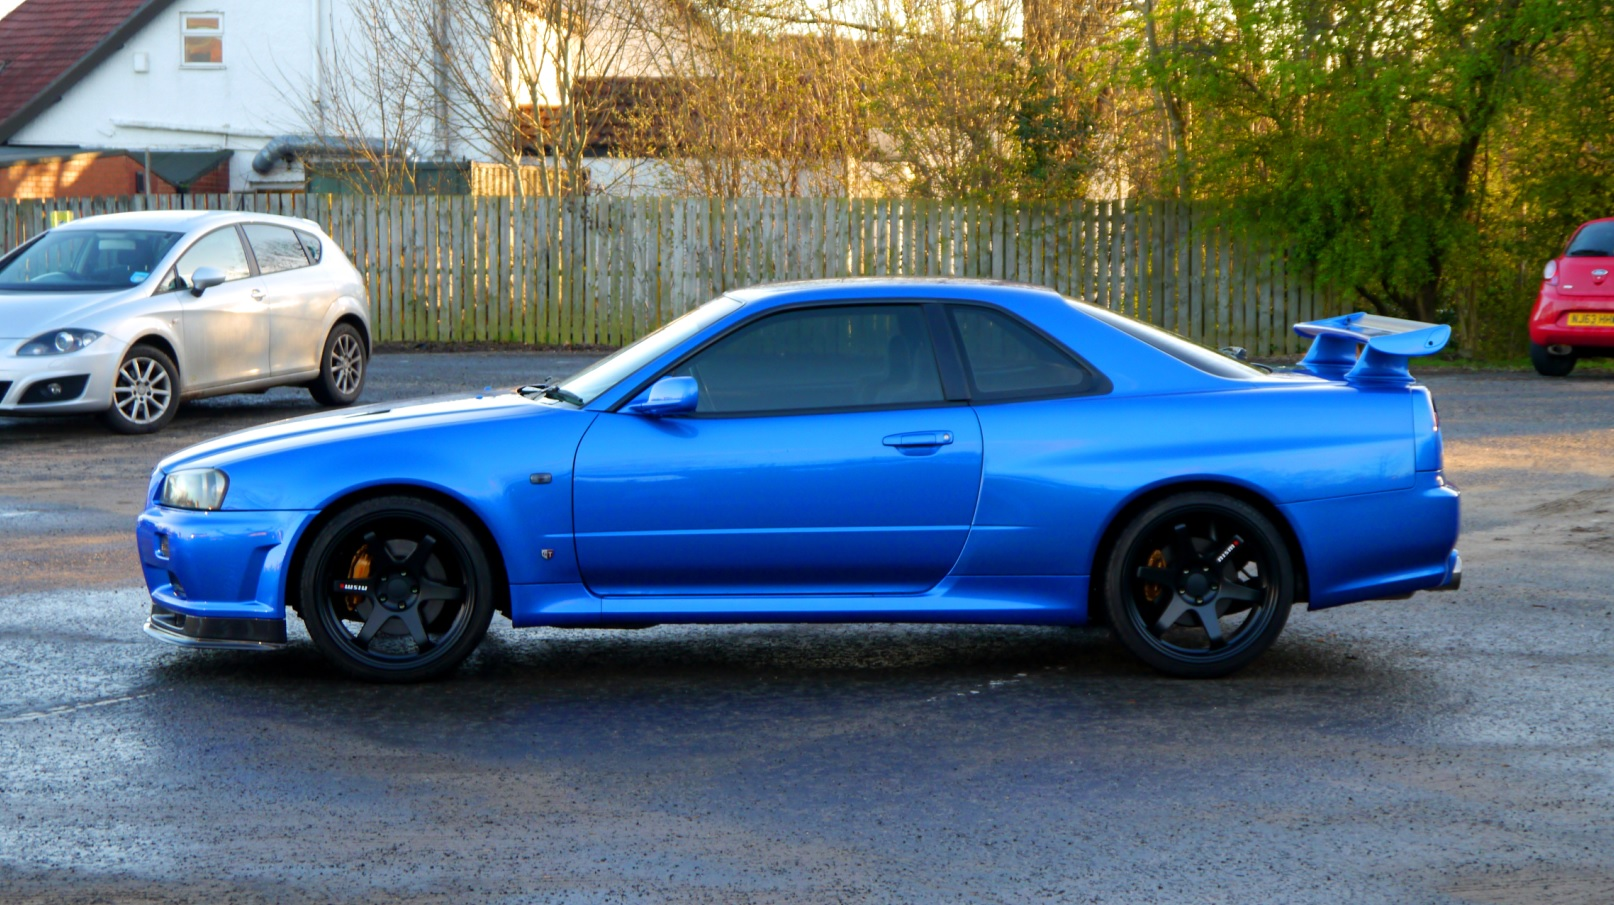 1999 nissan skyline r34 gtr 6 speed manual. Black Bedroom Furniture Sets. Home Design Ideas